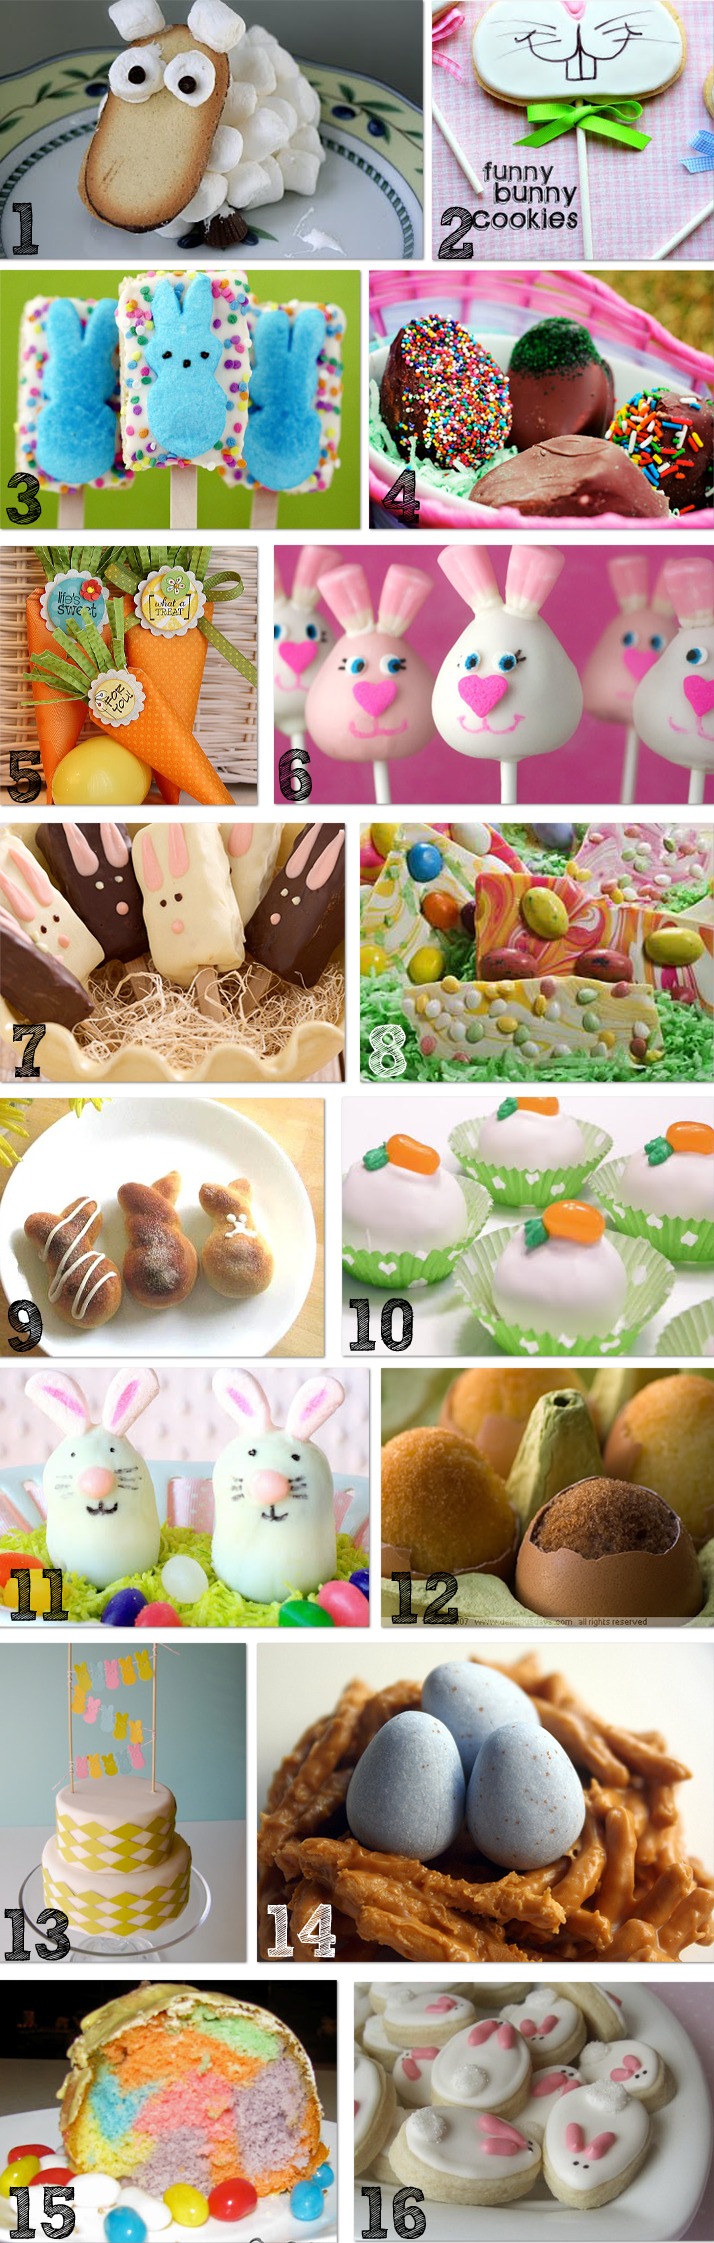 15 yummy Easter treats! #Easter